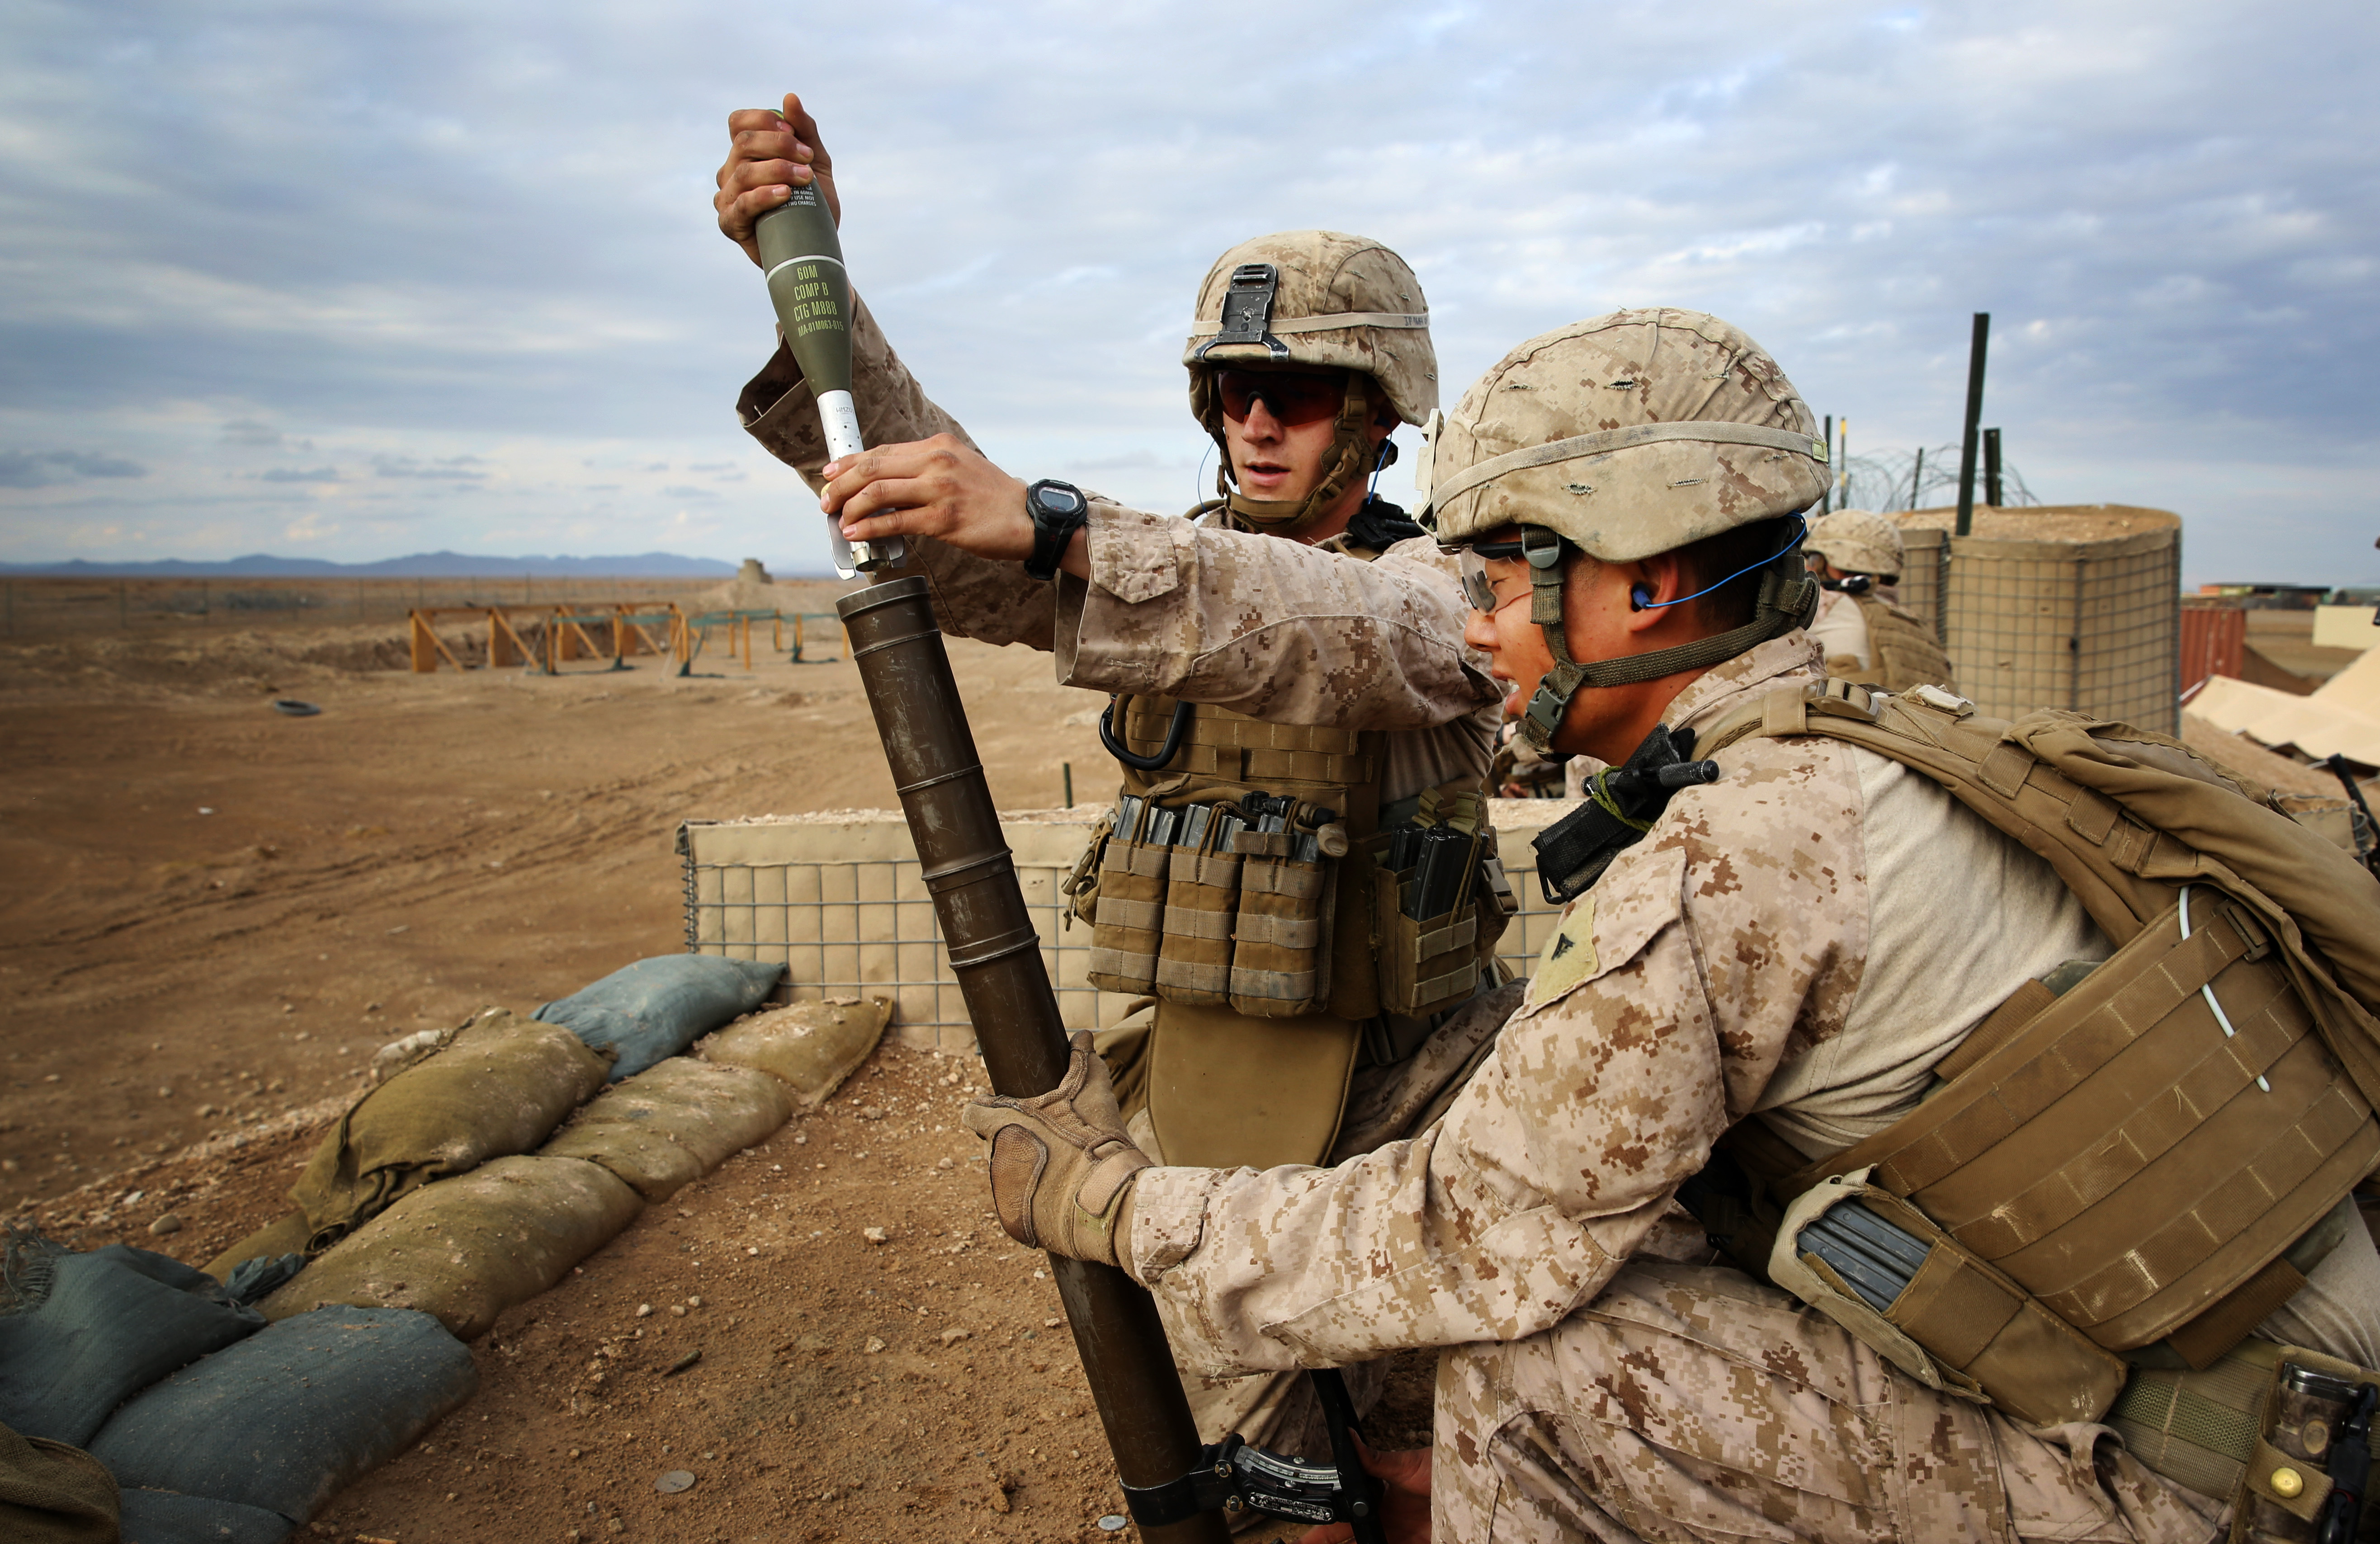 Corps Seeks Prior Service Marines Some Specialties